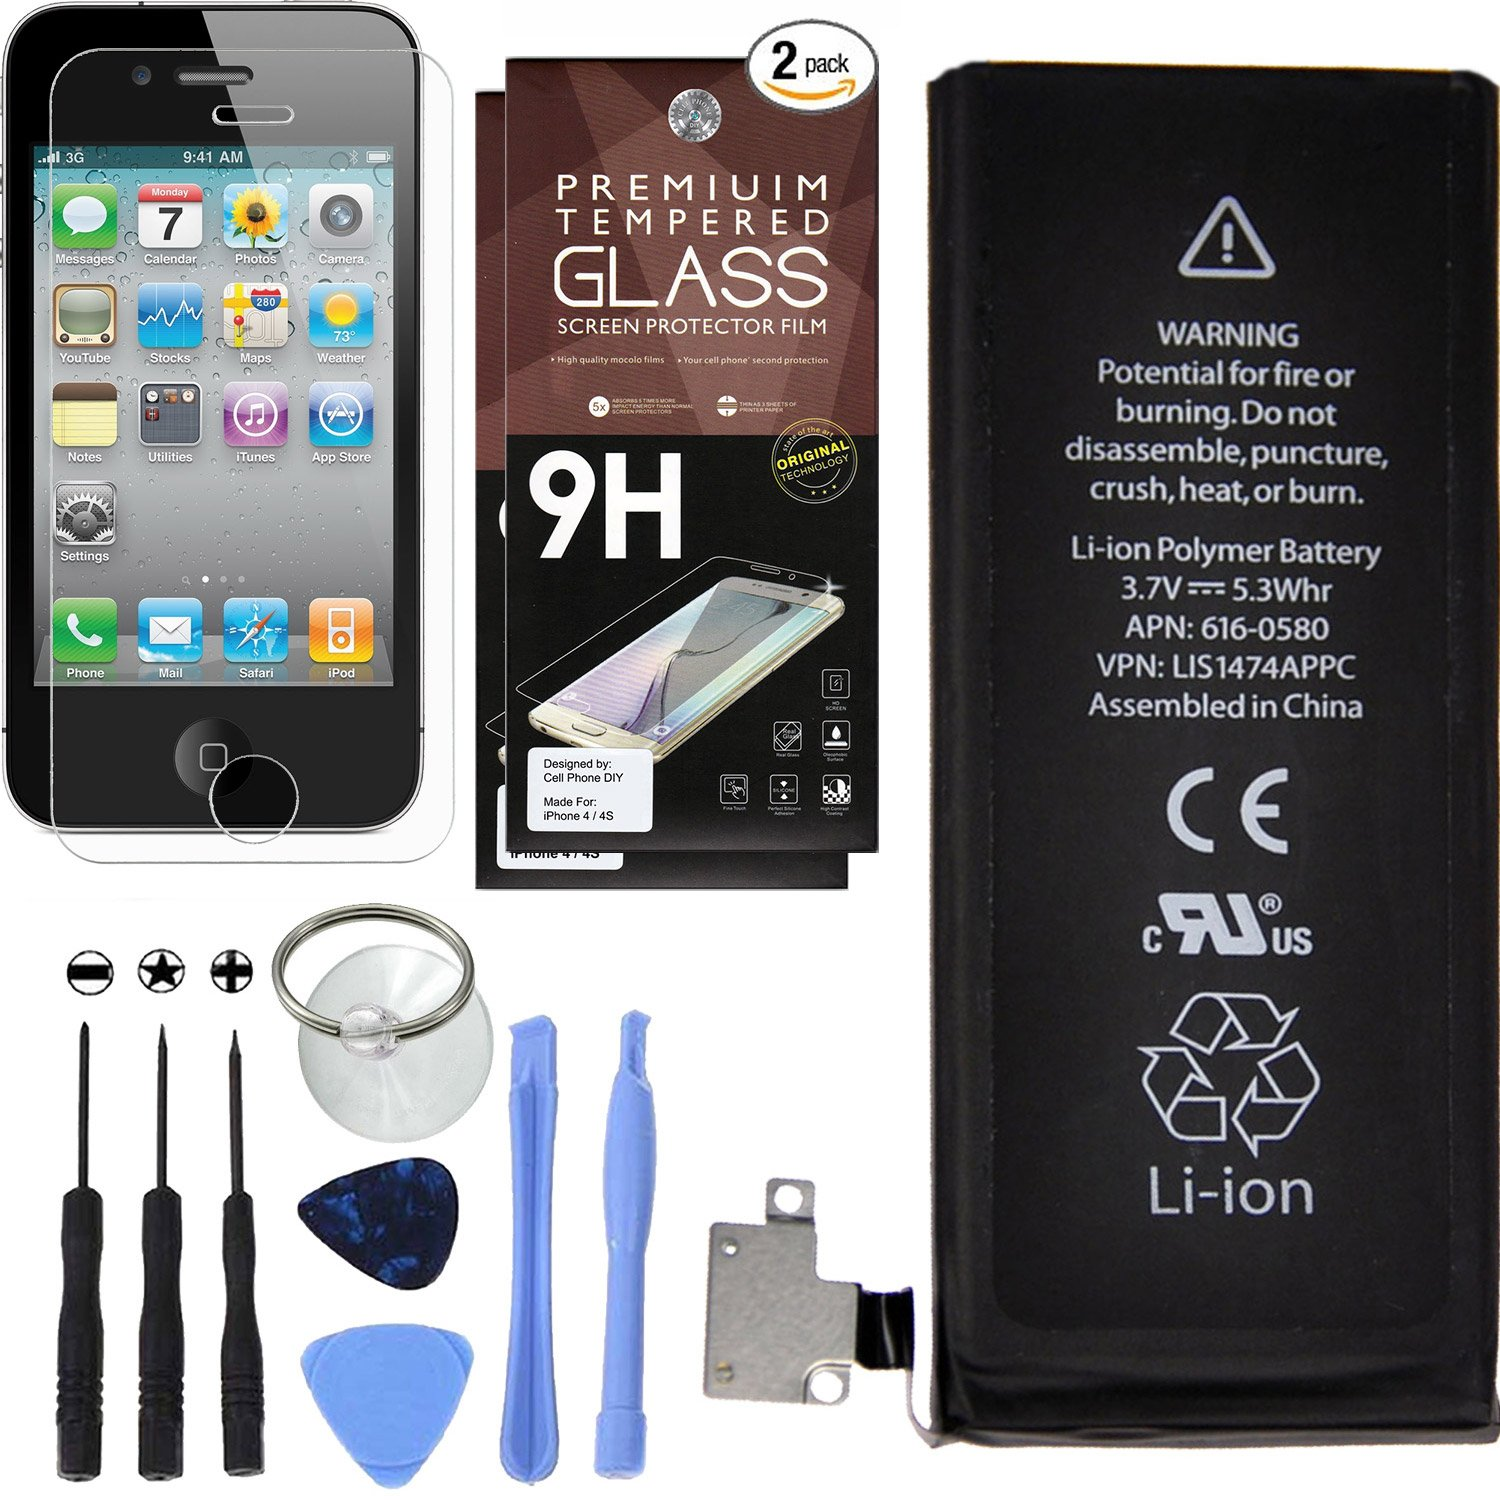 Cell Phone DIY Battery Replacement for Apple iPhone 4S - Complete Repair  Kit – Includes Set of Tools – [Pack of 2] Glass Screen Protectors – 0 Cycle